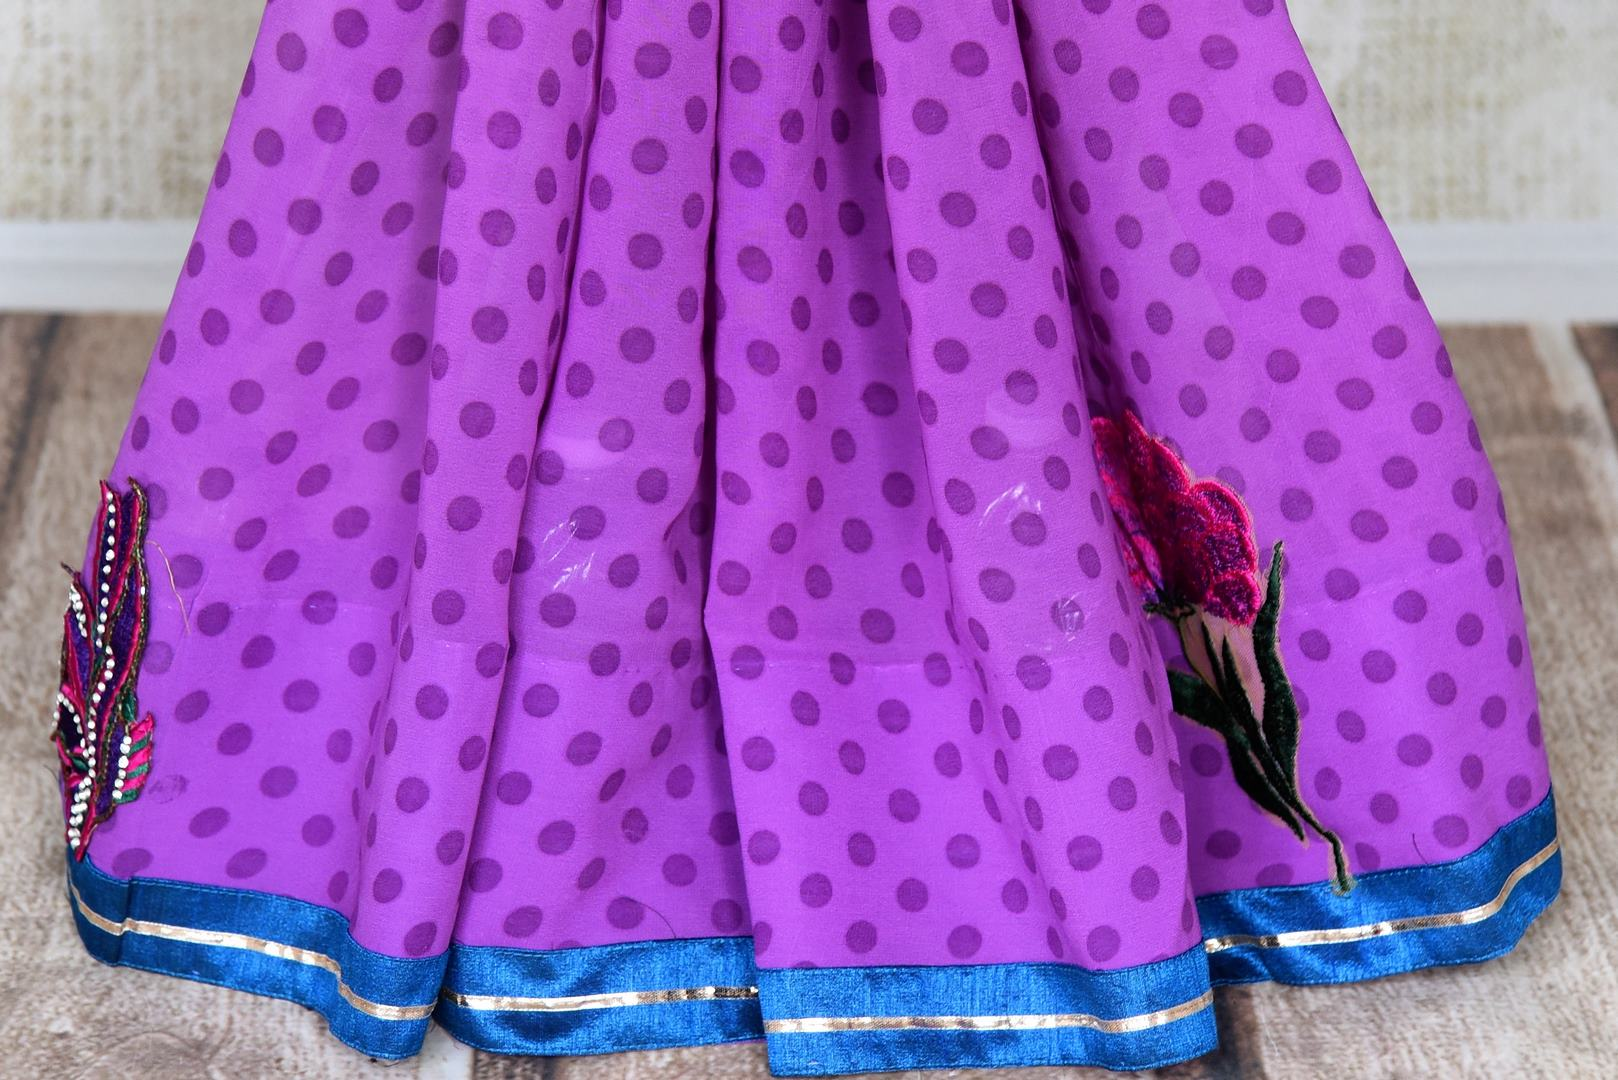 Buy purple and white polka dot georgette saree online in USA with embroidery. Shop the latest designer saris for weddings and special occasions from Pure Elegance Indian clothing store in USA.-pleats